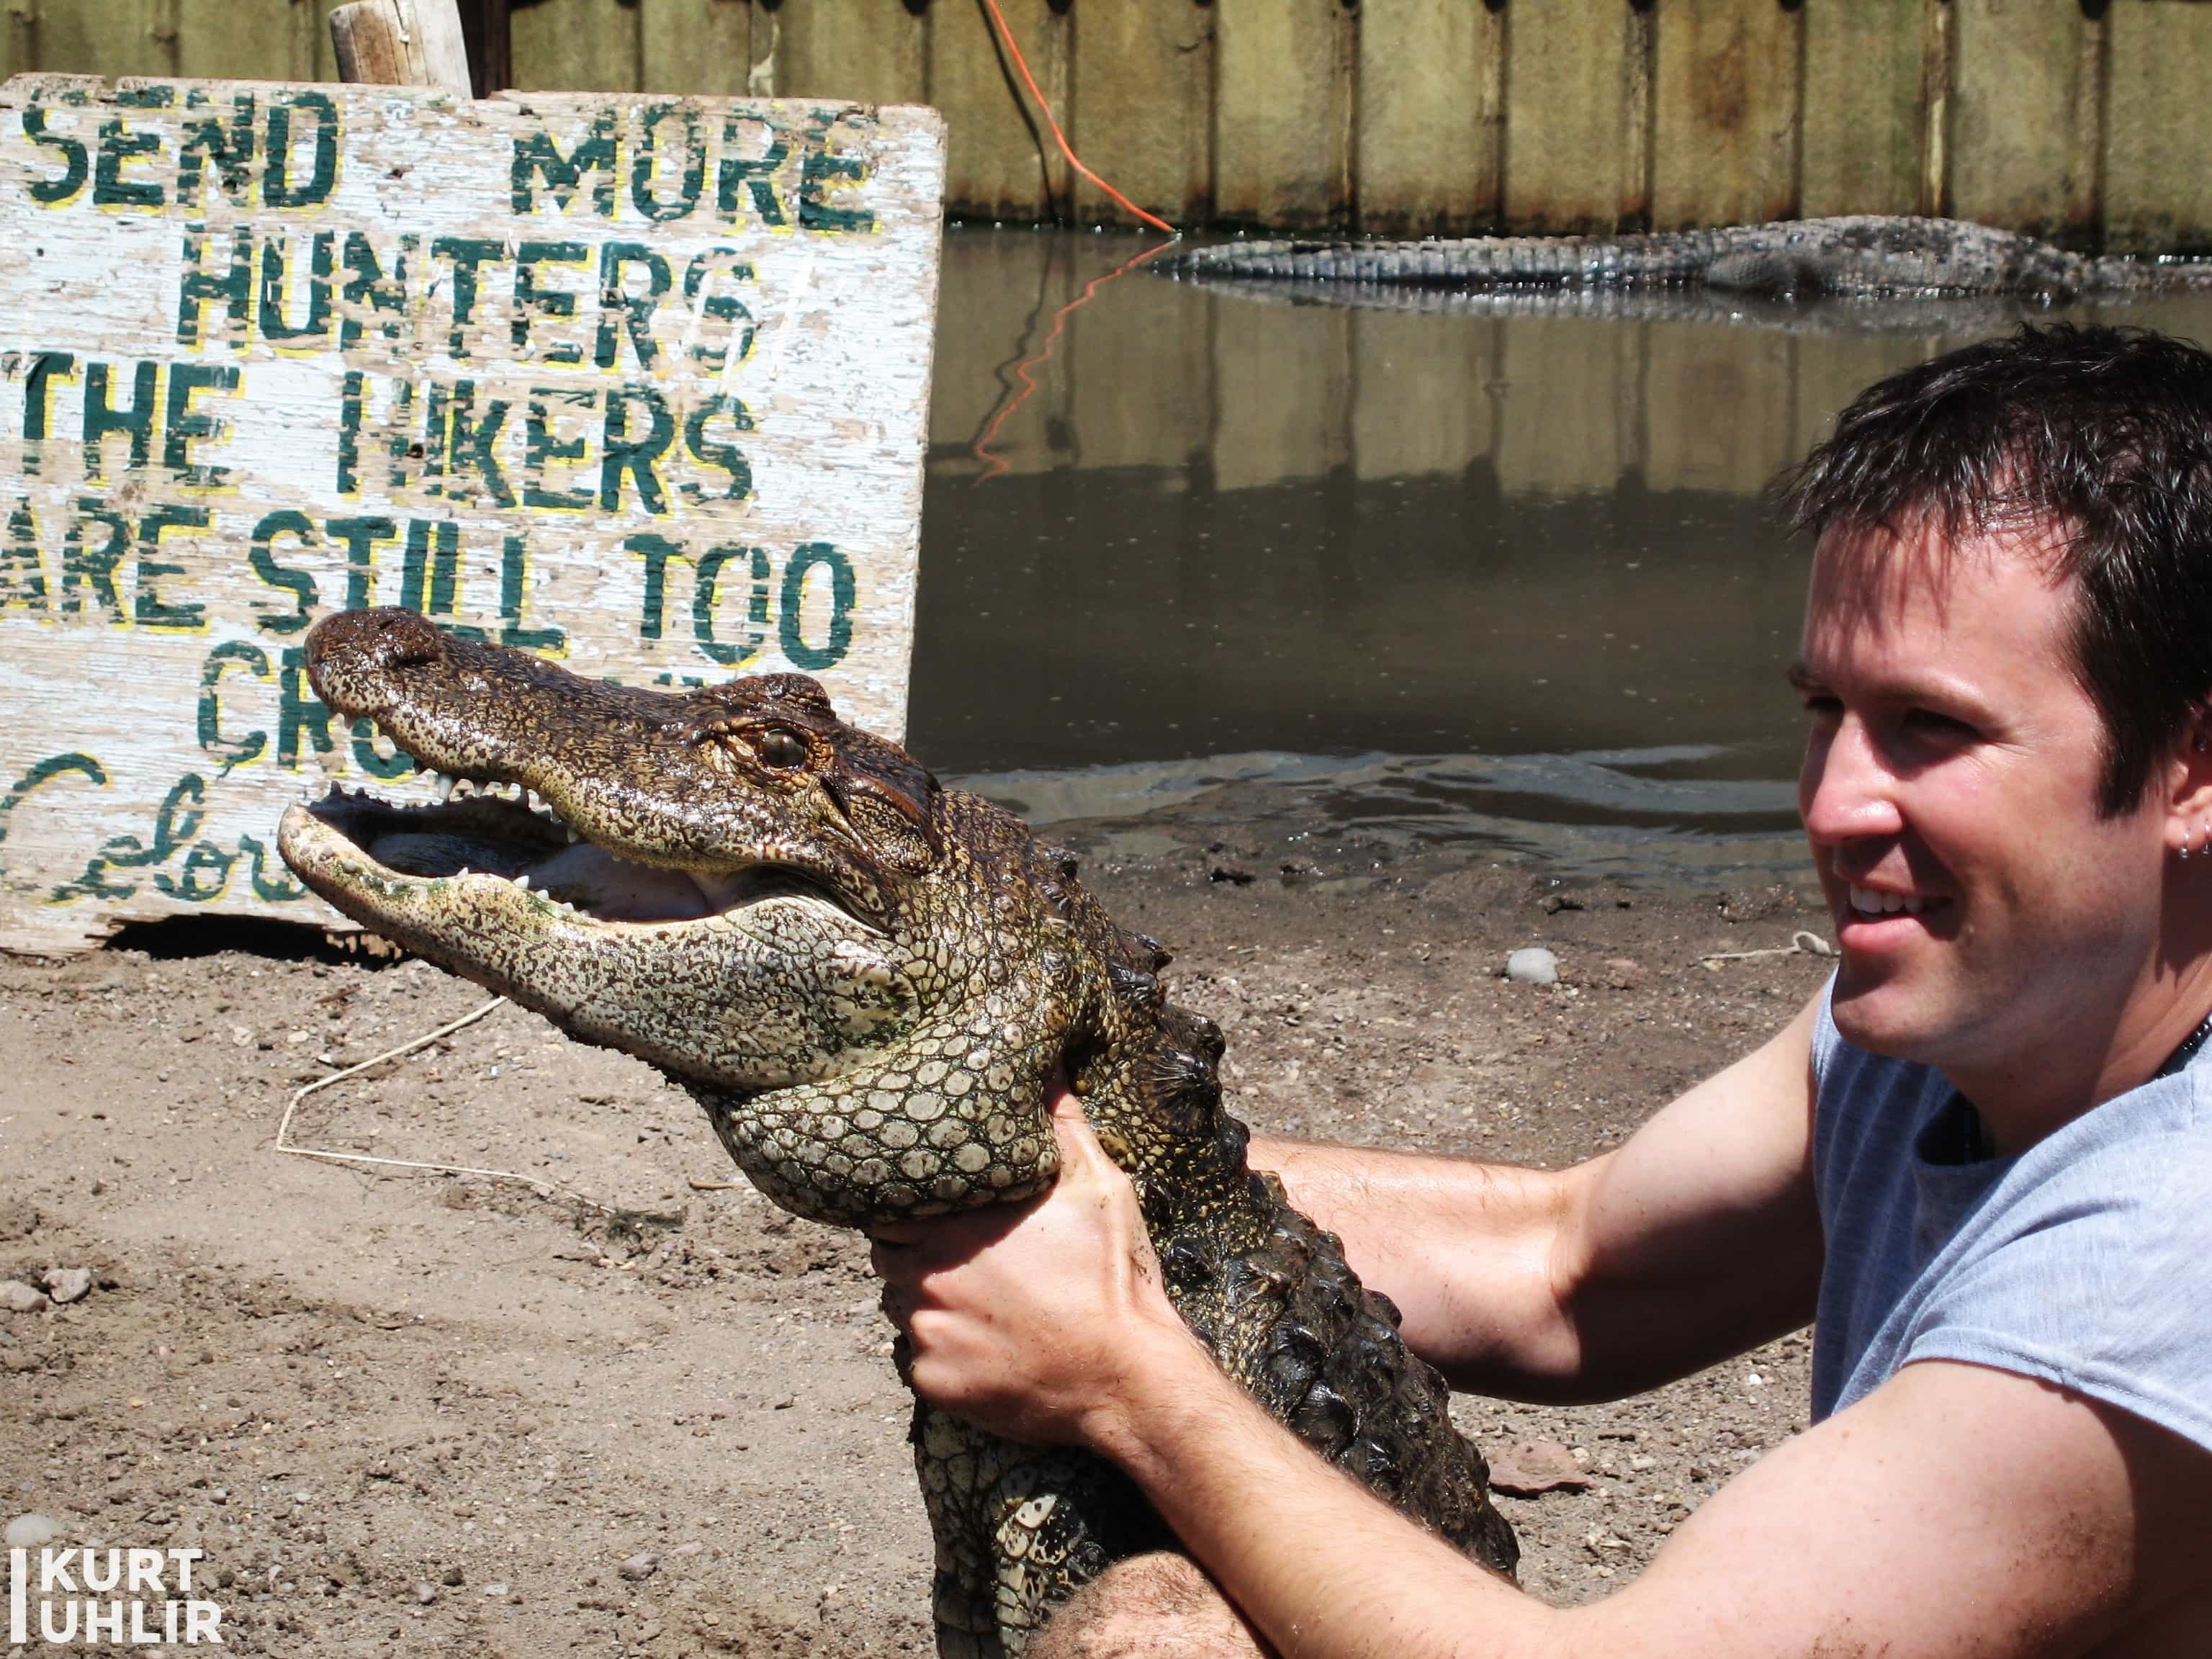 Kurt Uhlir handling a mid-sized alligator